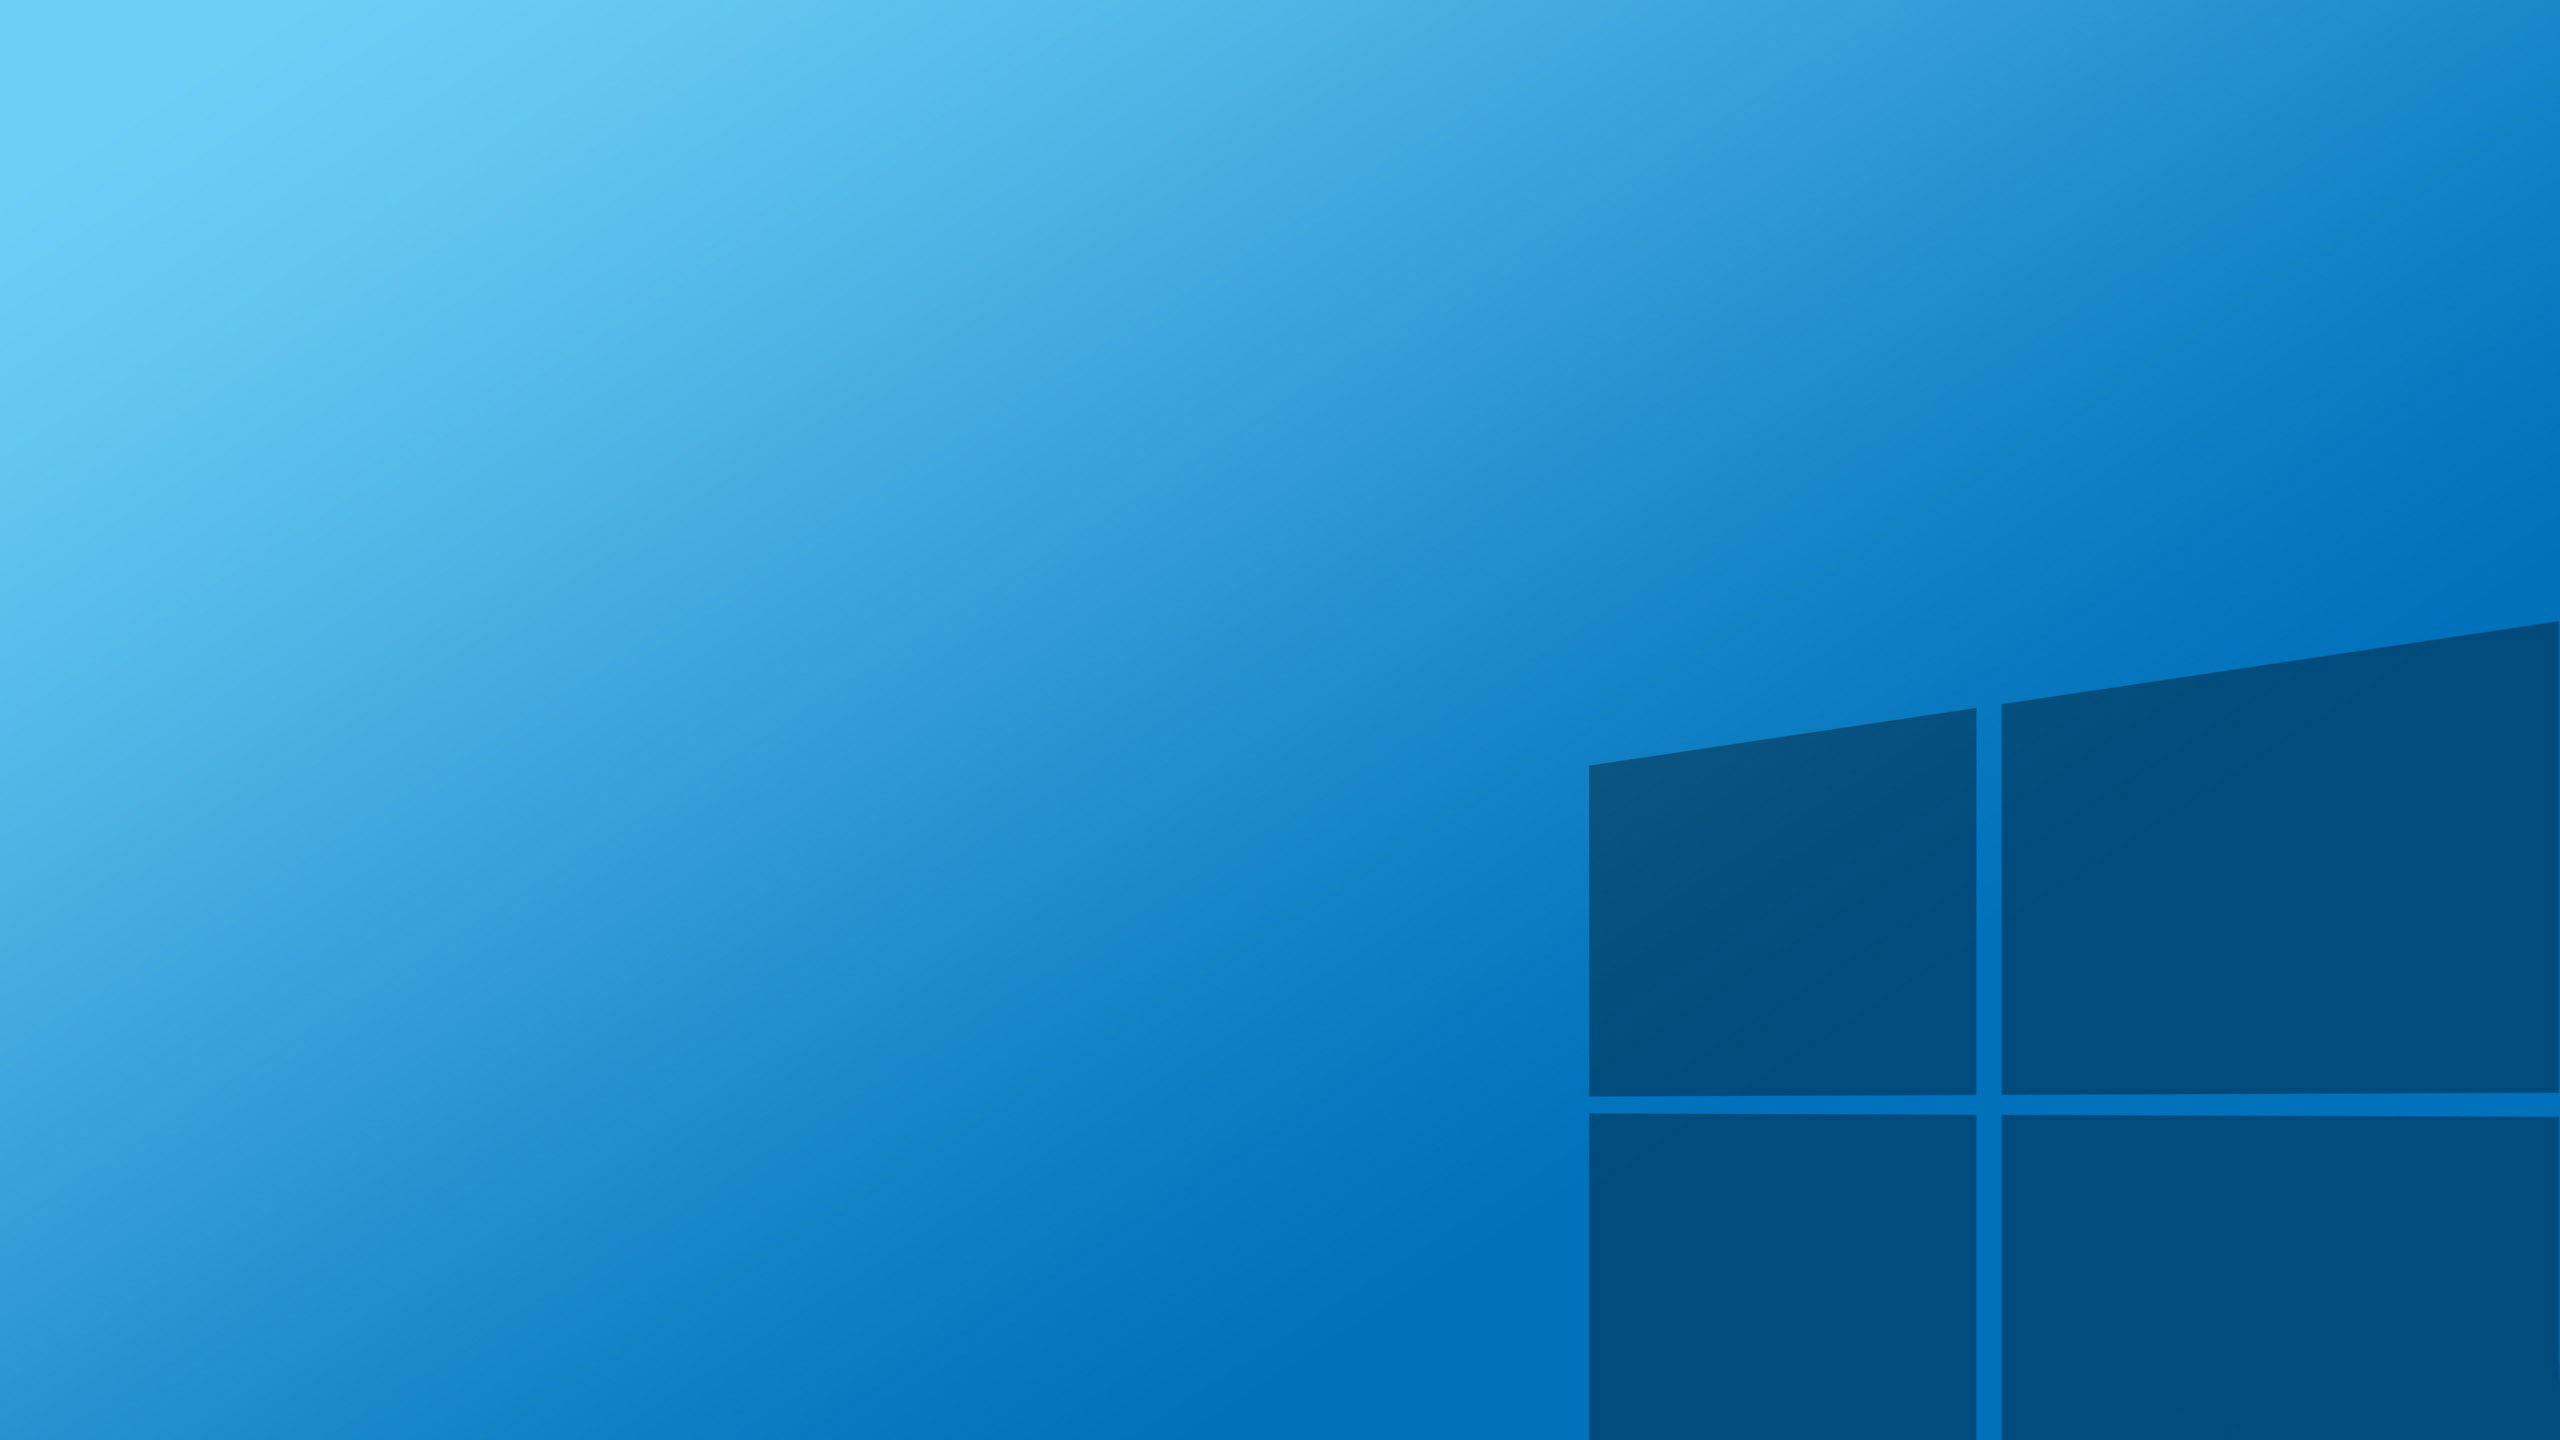 Microsoft windows 10 wallpaper official wallpapersafari for Windows official